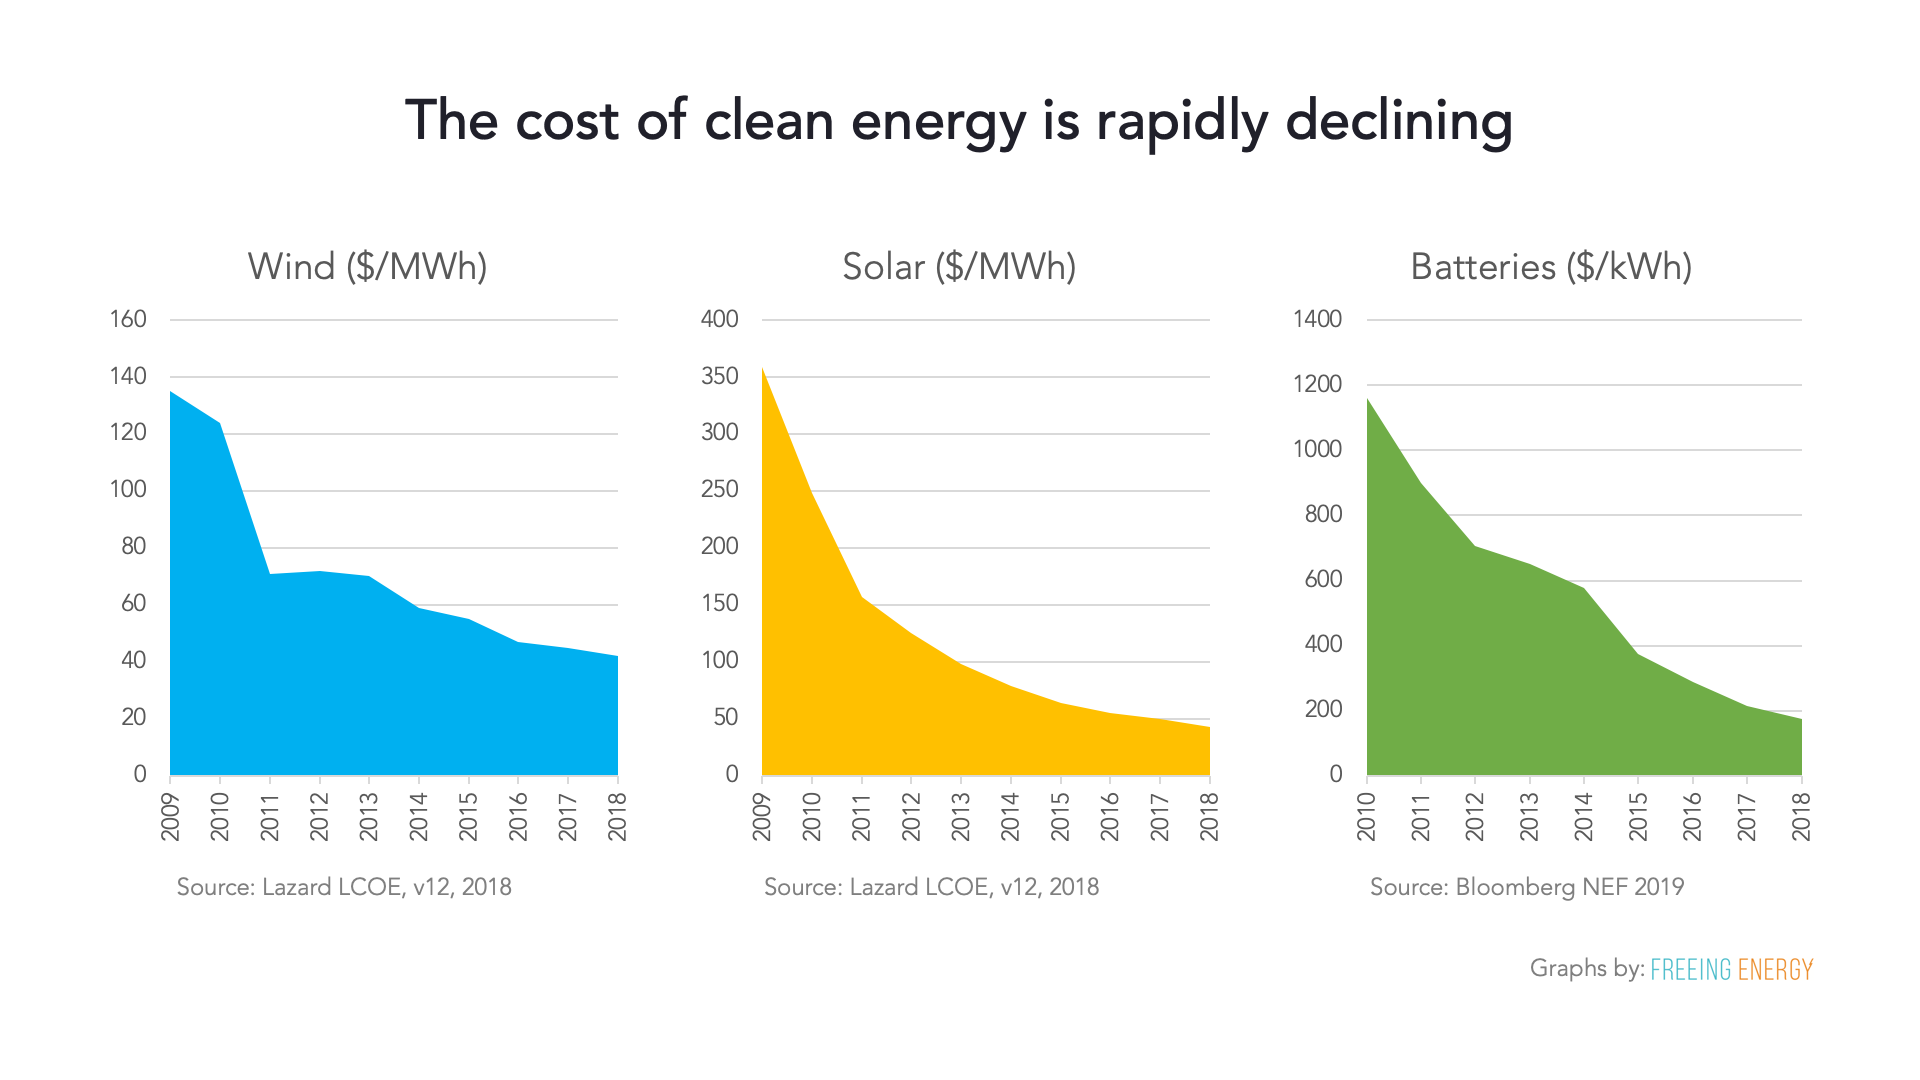 graph - the lowering costs of clean energy - wind, solar and batteries are all showing sharp declines in price